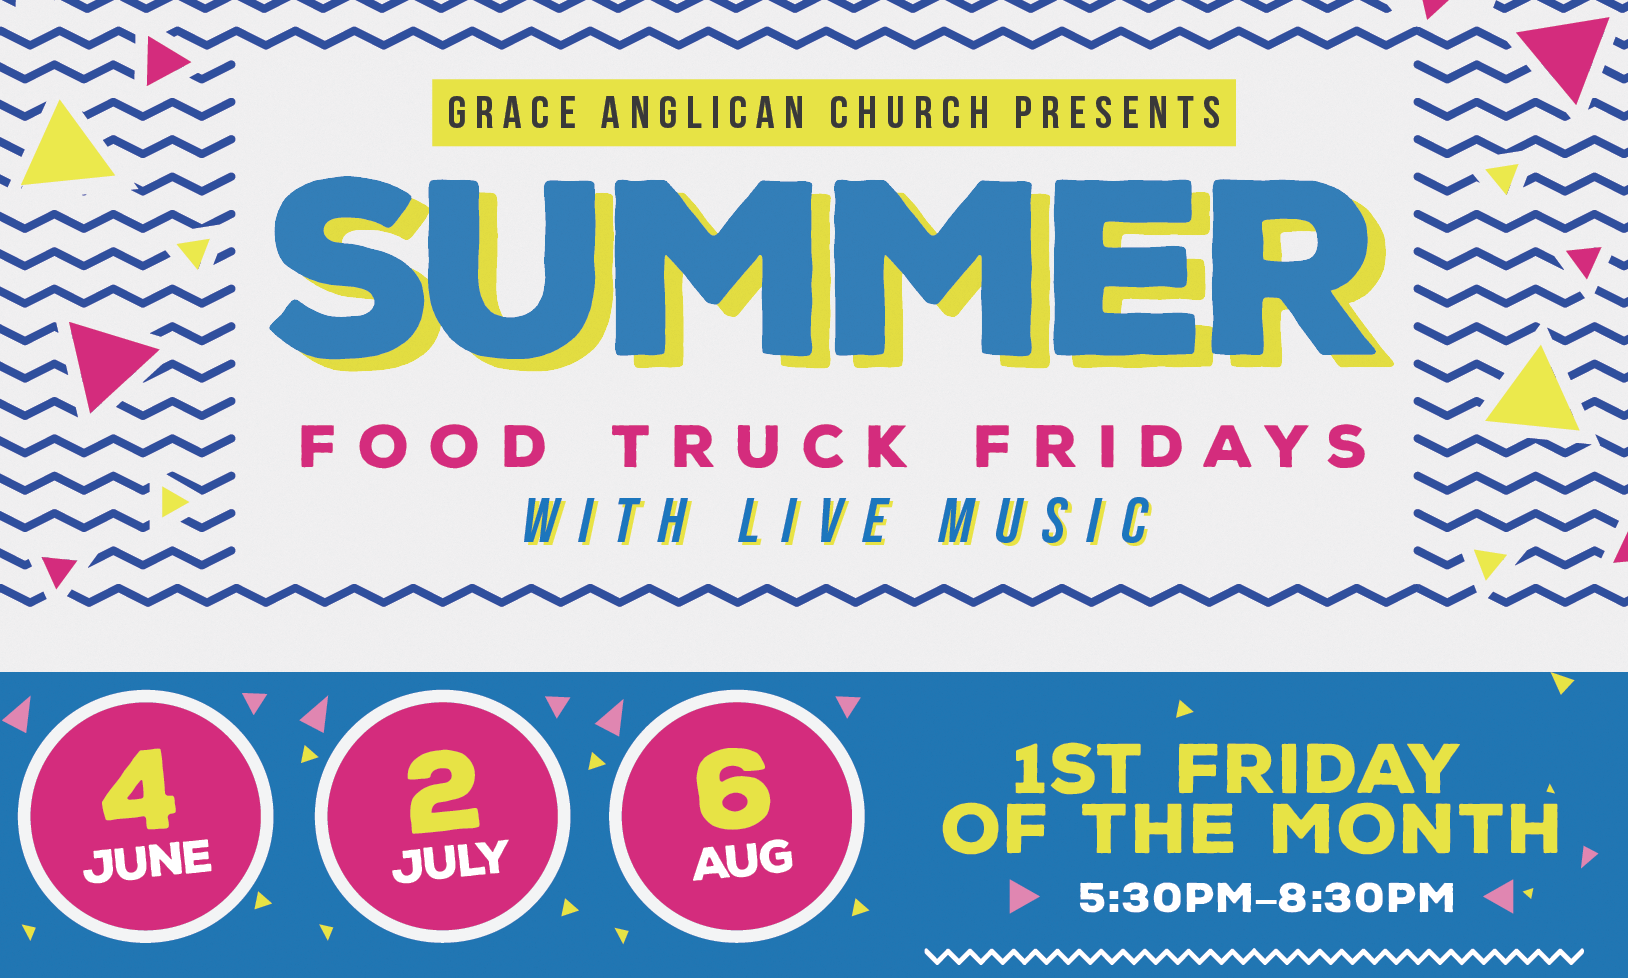 June 4th Food Trucks and Live Music